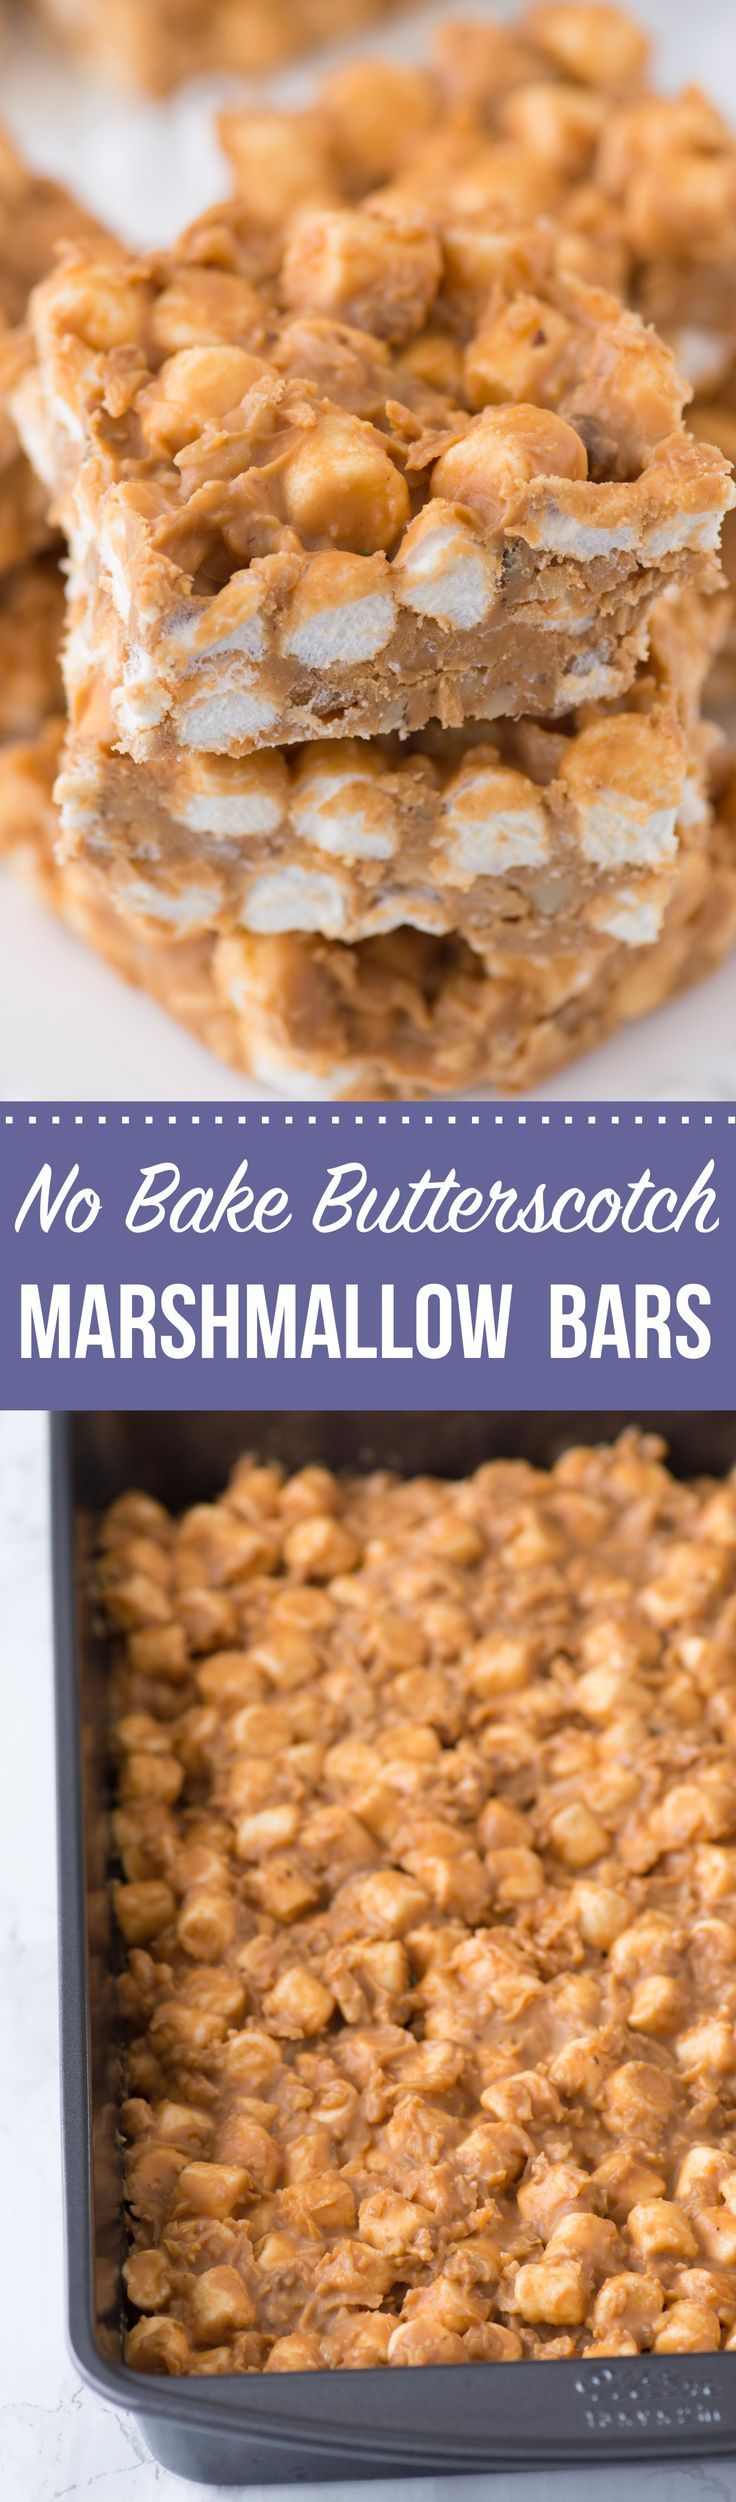 A simple no bake recipe for butterscotch marshmallow bars with coconut and walnuts! This is a classic holiday no bake treat!